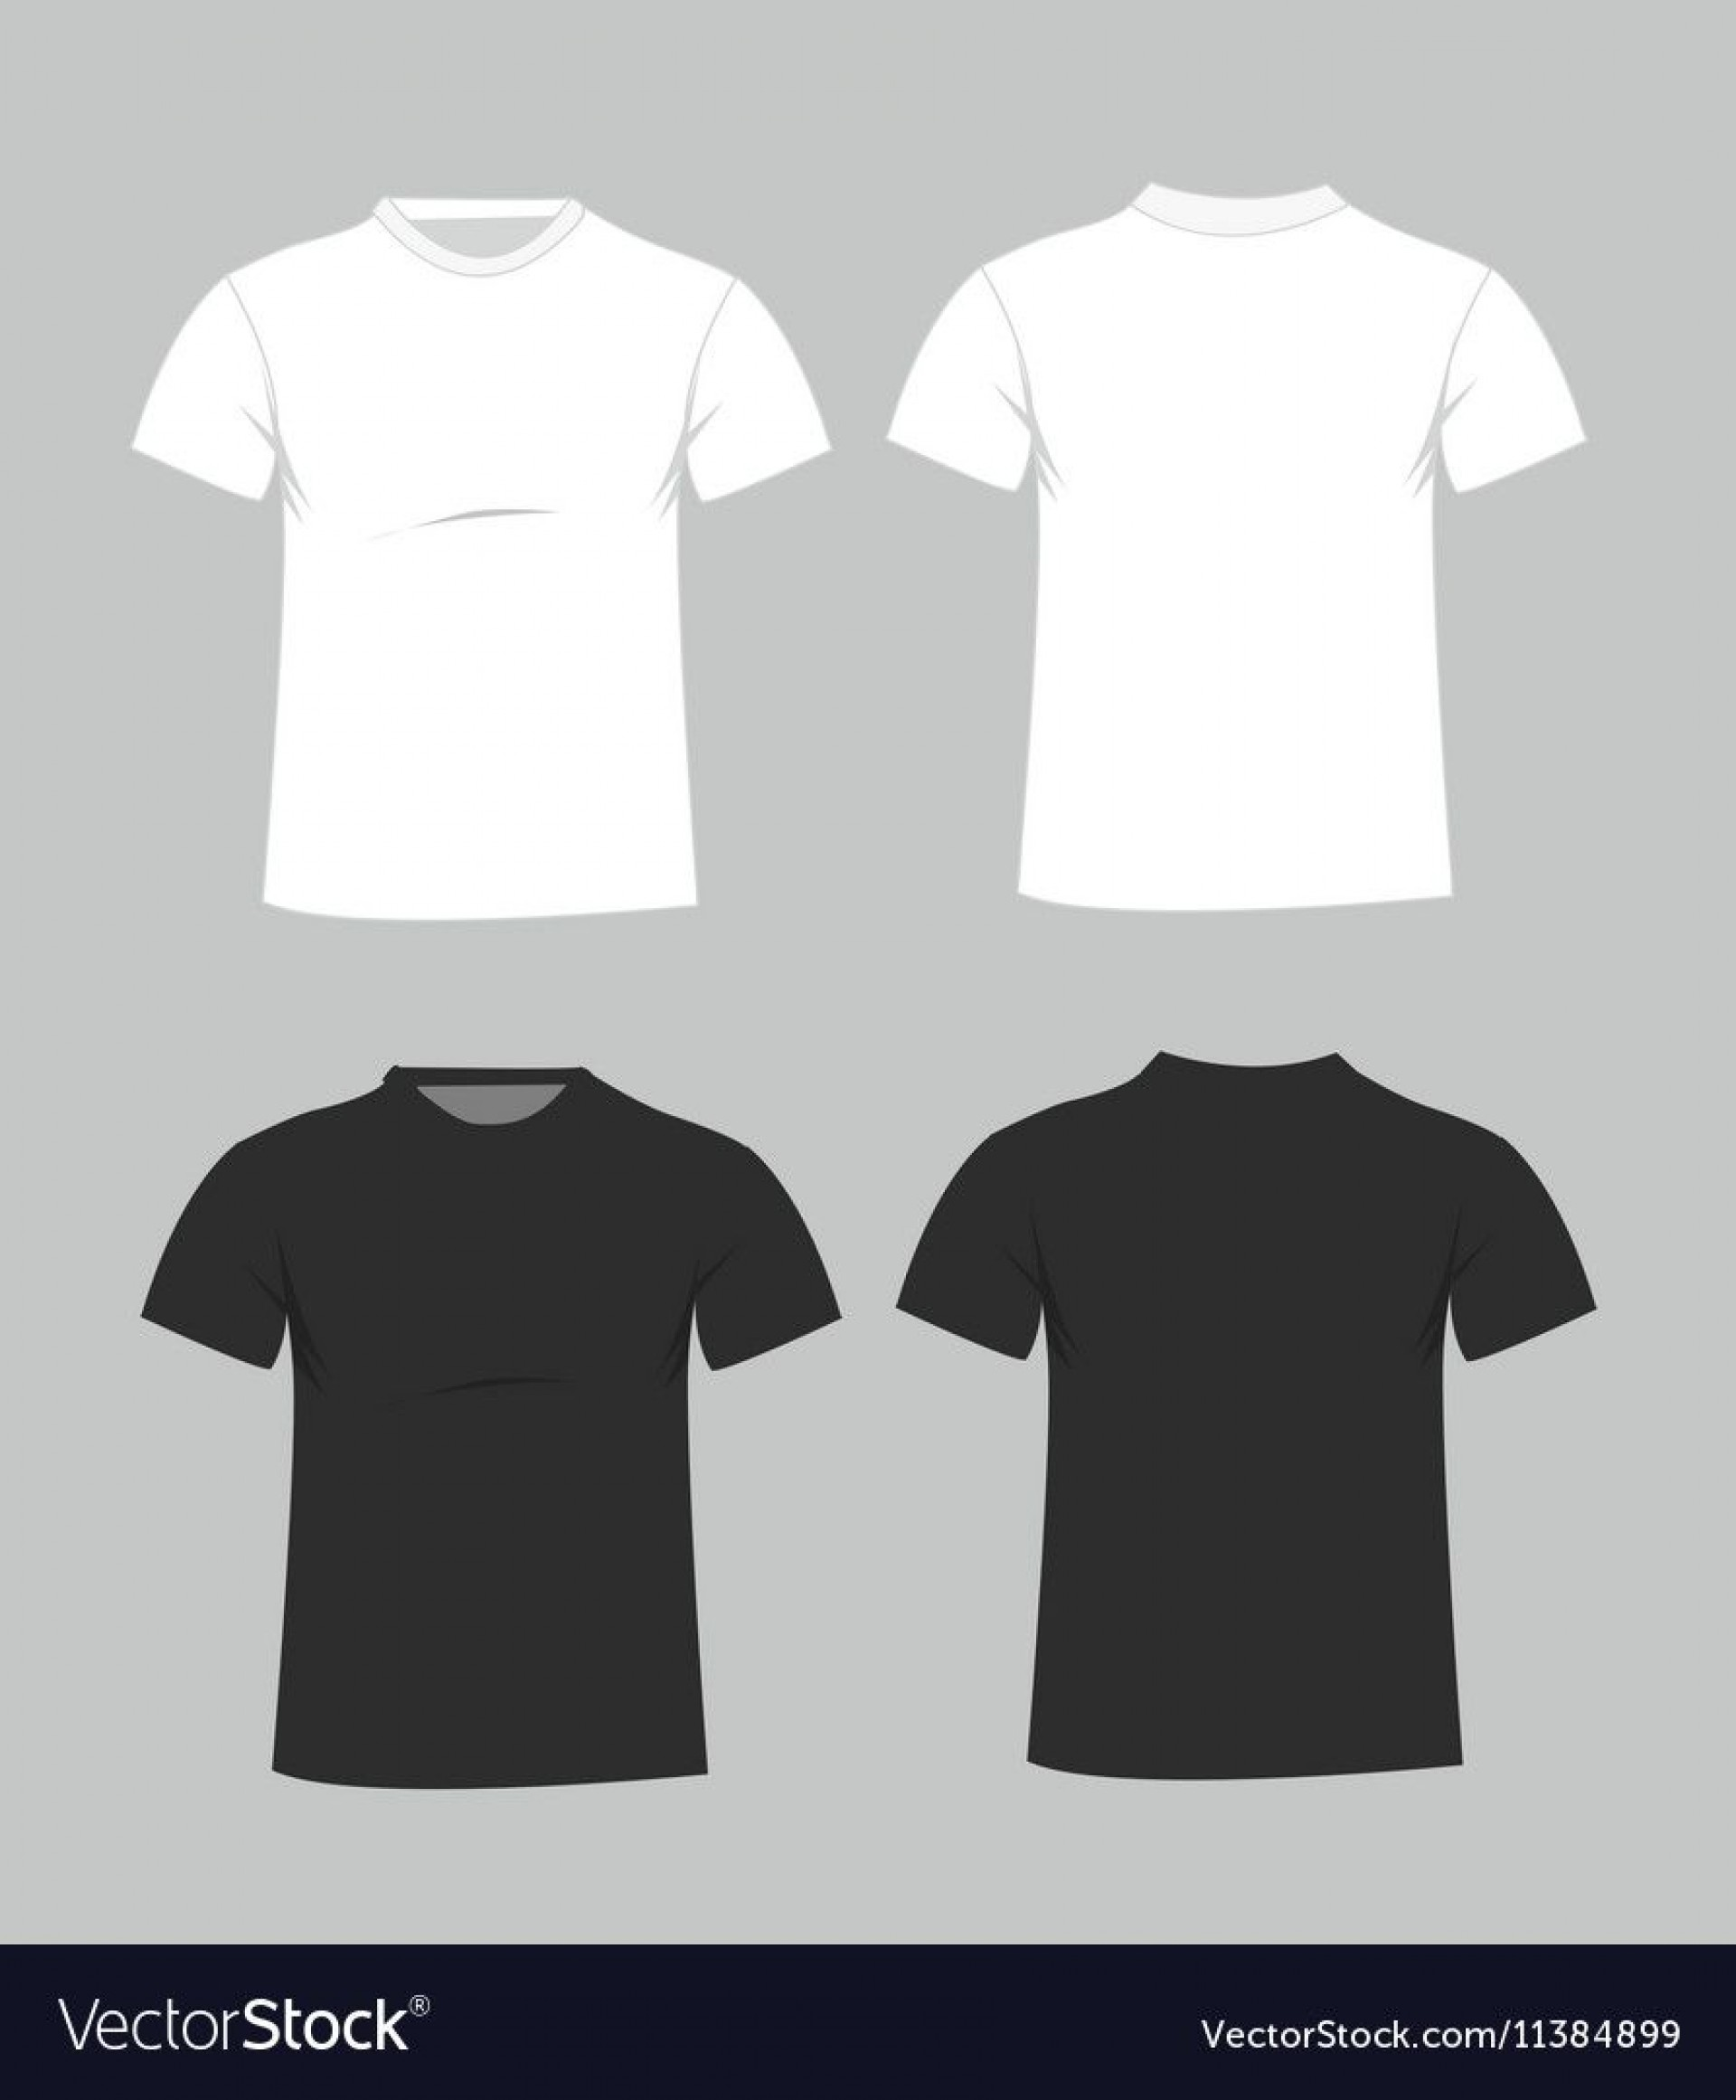 005 Imposing T Shirt Template Free High Resolution  T-shirt Mockup Download Coreldraw Vector1920